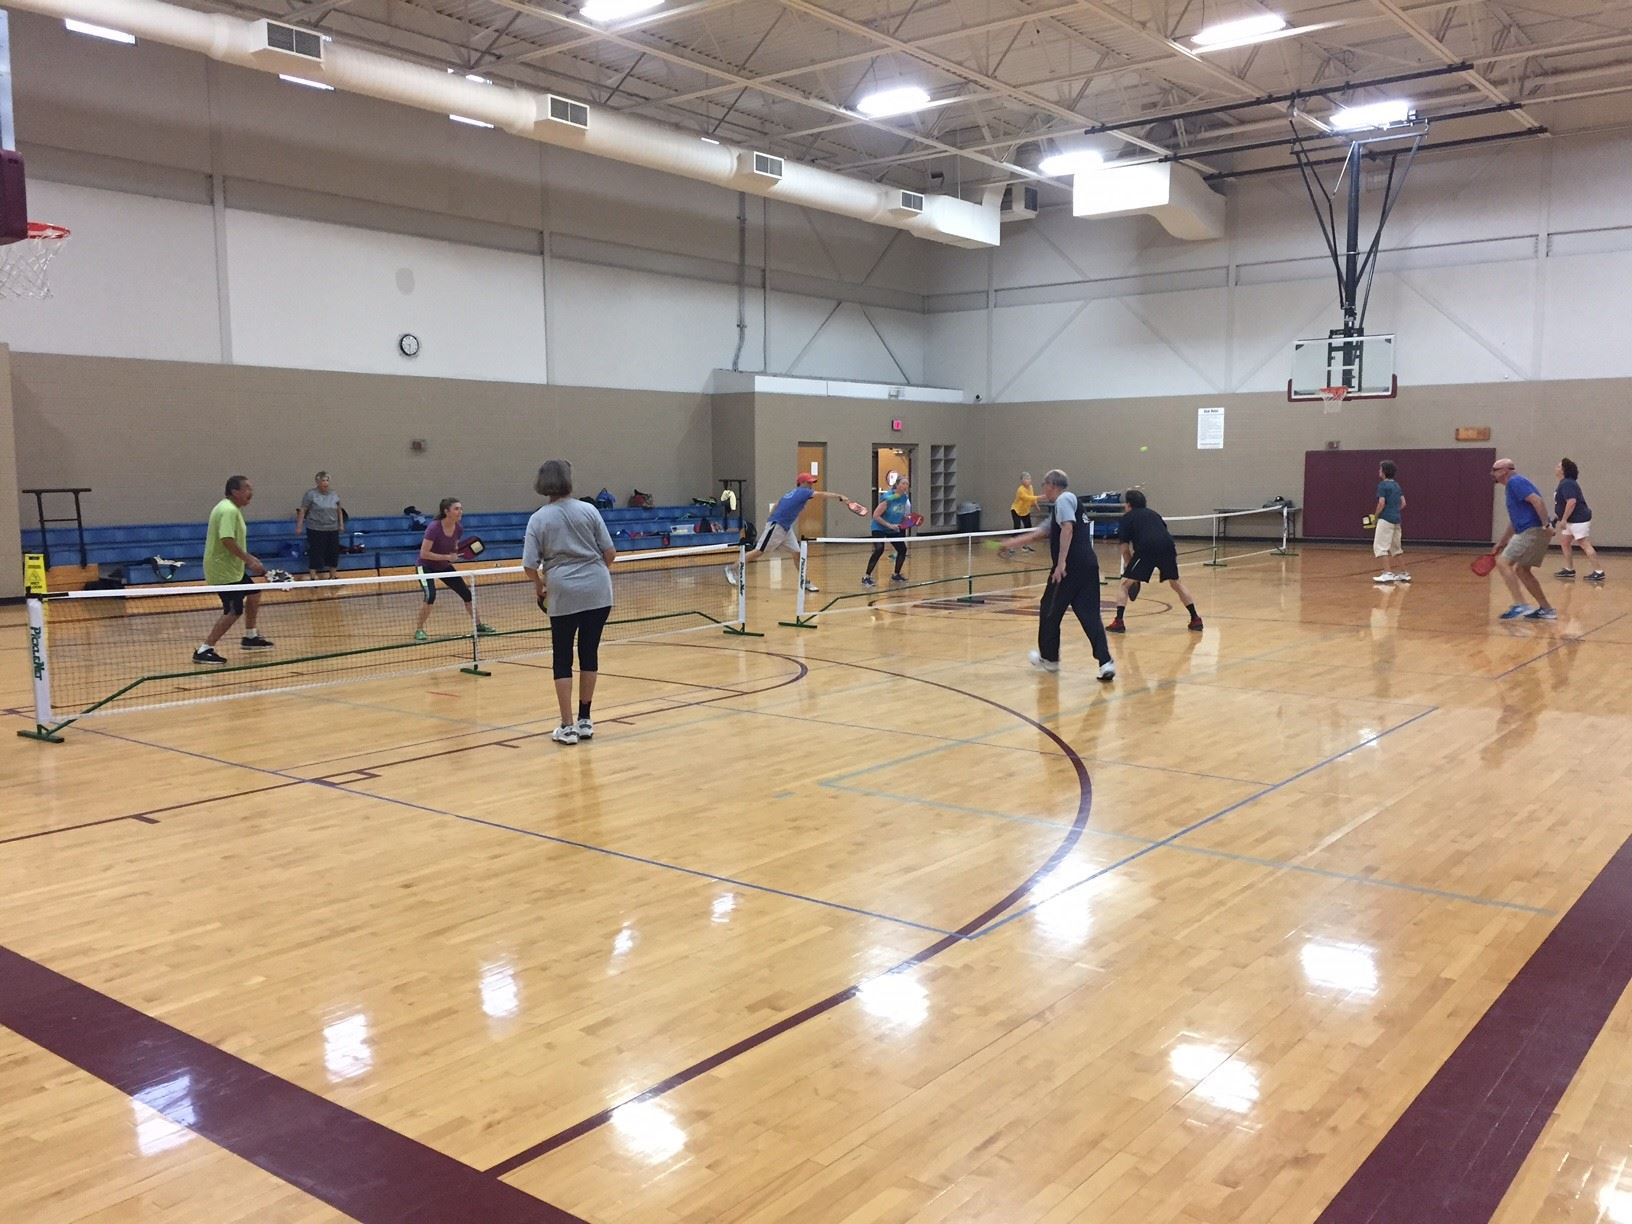 6 men and 6 women playing 3 games of doubles Pickleball on 3 Pickleball courts set up in a gym.